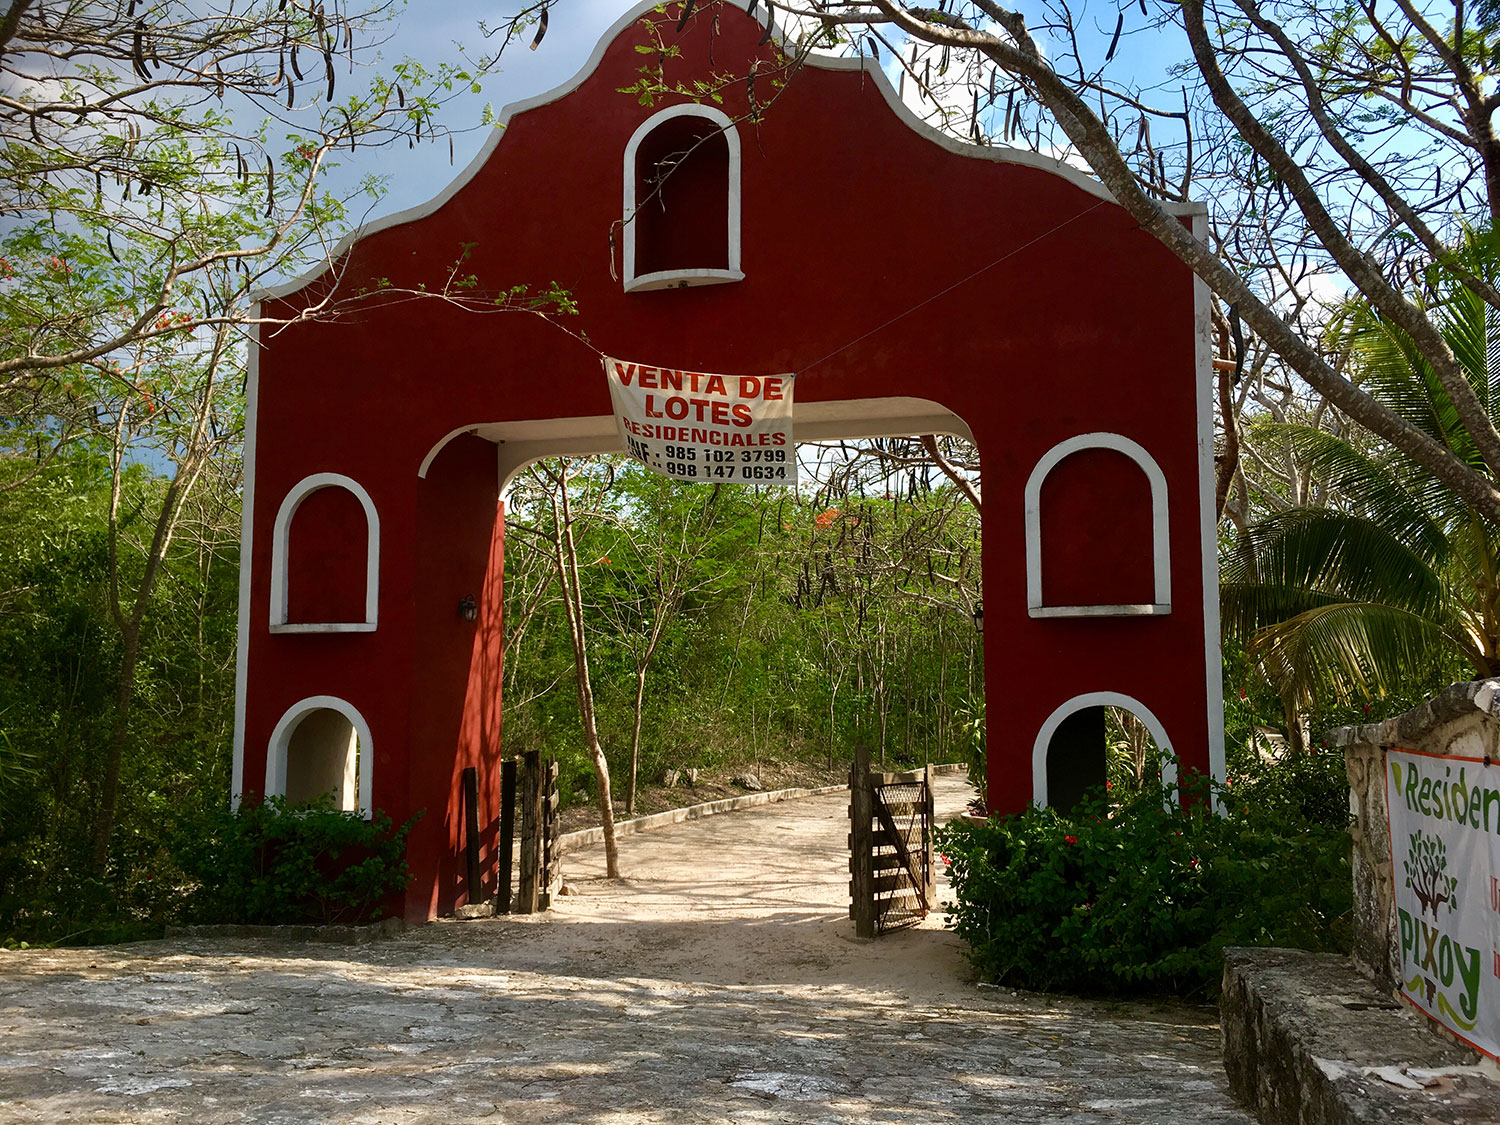 A typical arch entrance to the hacienda. Note the for sale sign.